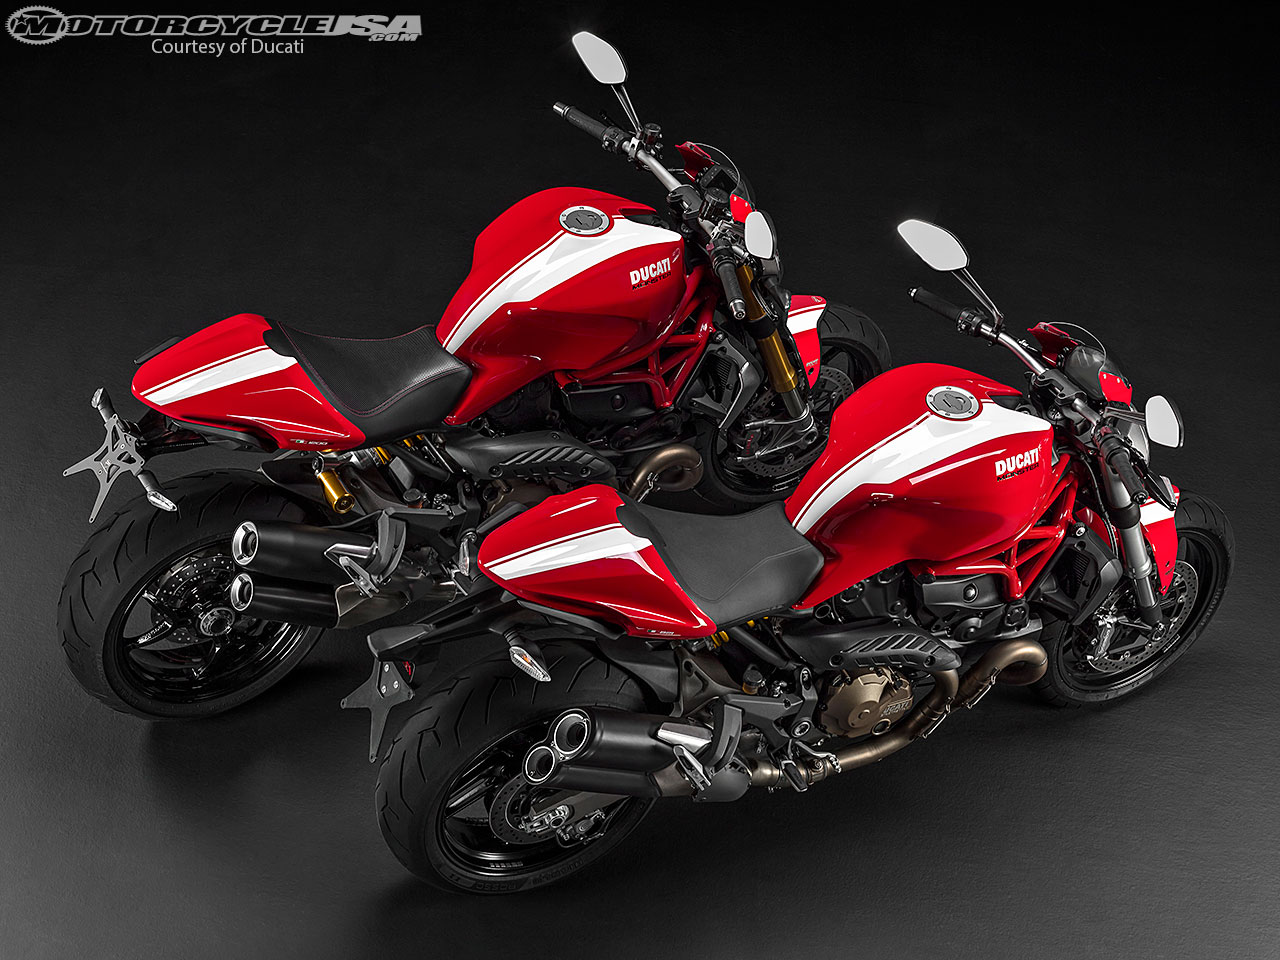 Ducati Monster 821 images #79384